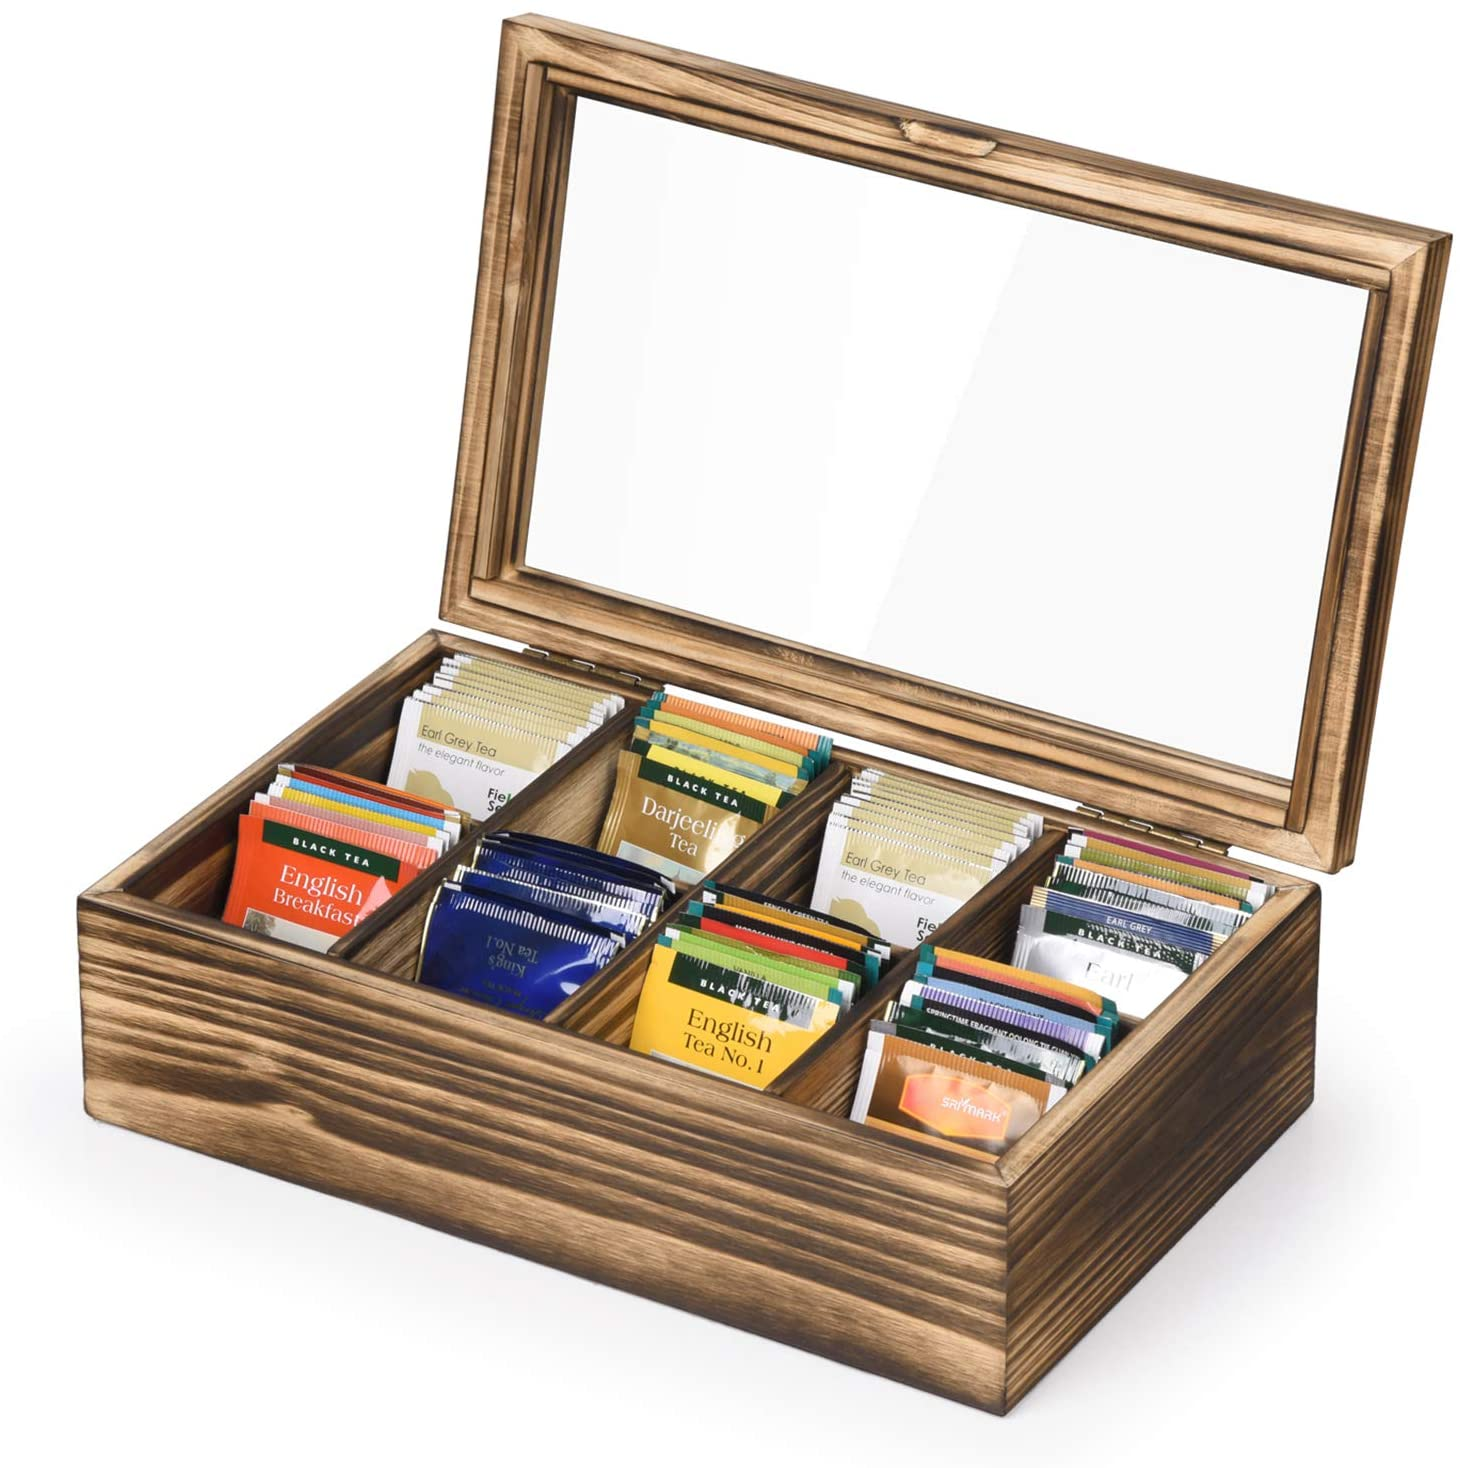 Alsonerbay Wooden Tea Box Tea Bag Holder Kitchen Storage Chest Box for Spice Pouches and Sugar Packets with 8 Compartments and Glass Window Carbonized Black